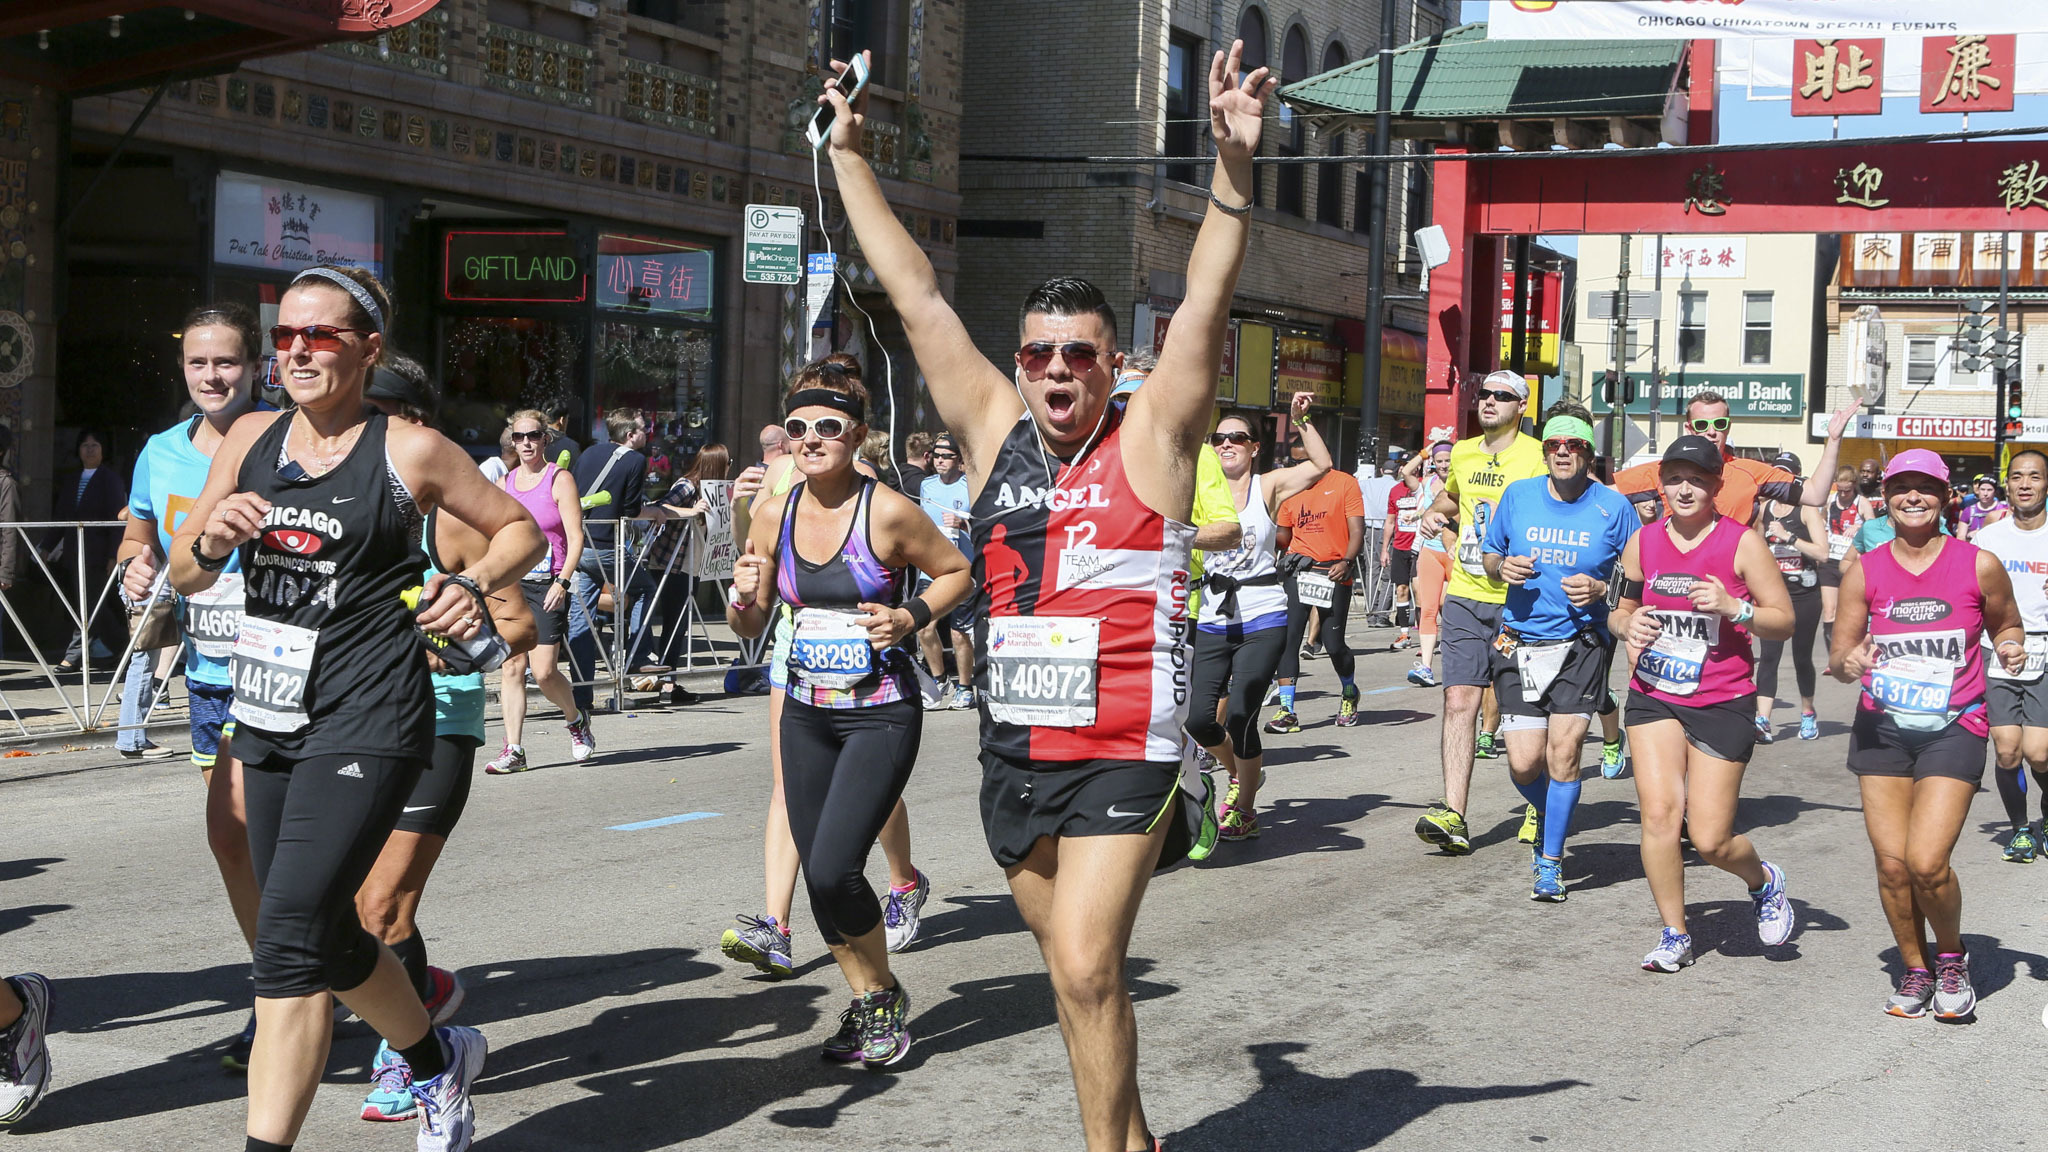 Thousands of runners sped through neighborhoods across the city during the 2015 Chicago Marathon